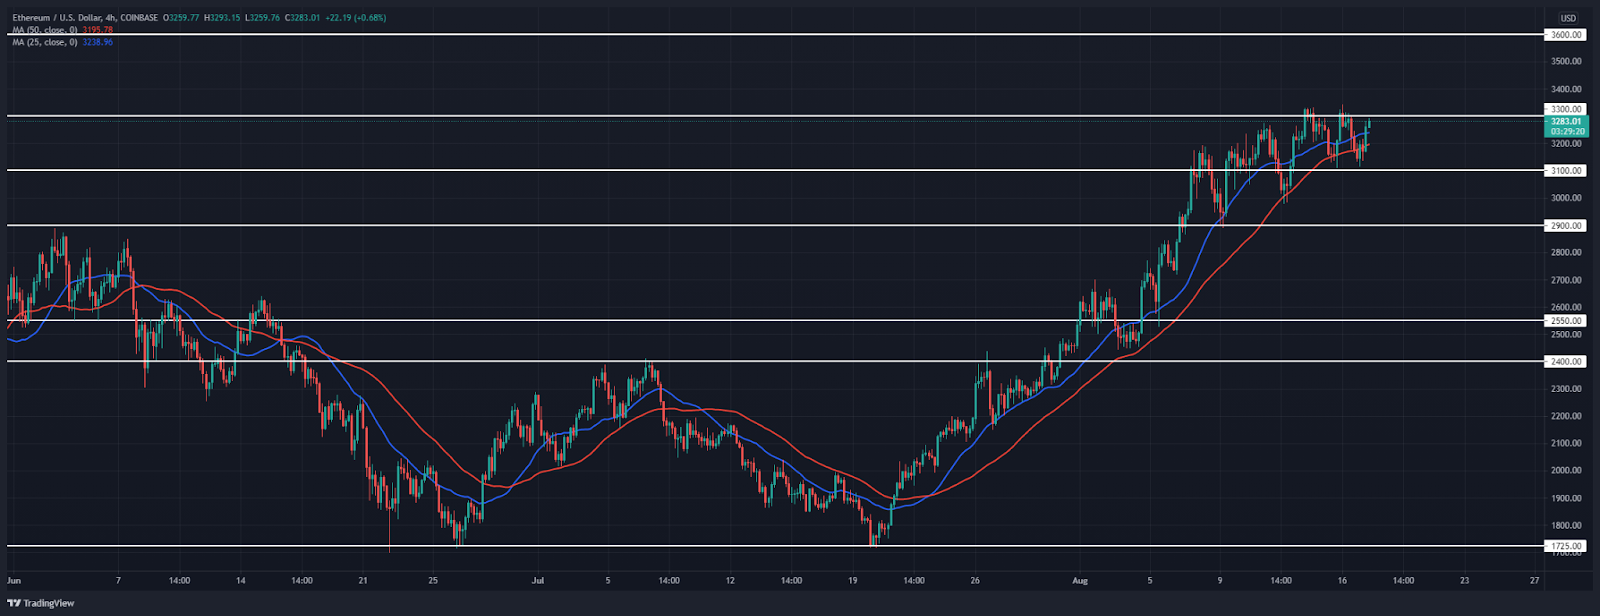 Ethereum Price Analysis: ETH ready to break $3,300 after a retest of $3,100 support?